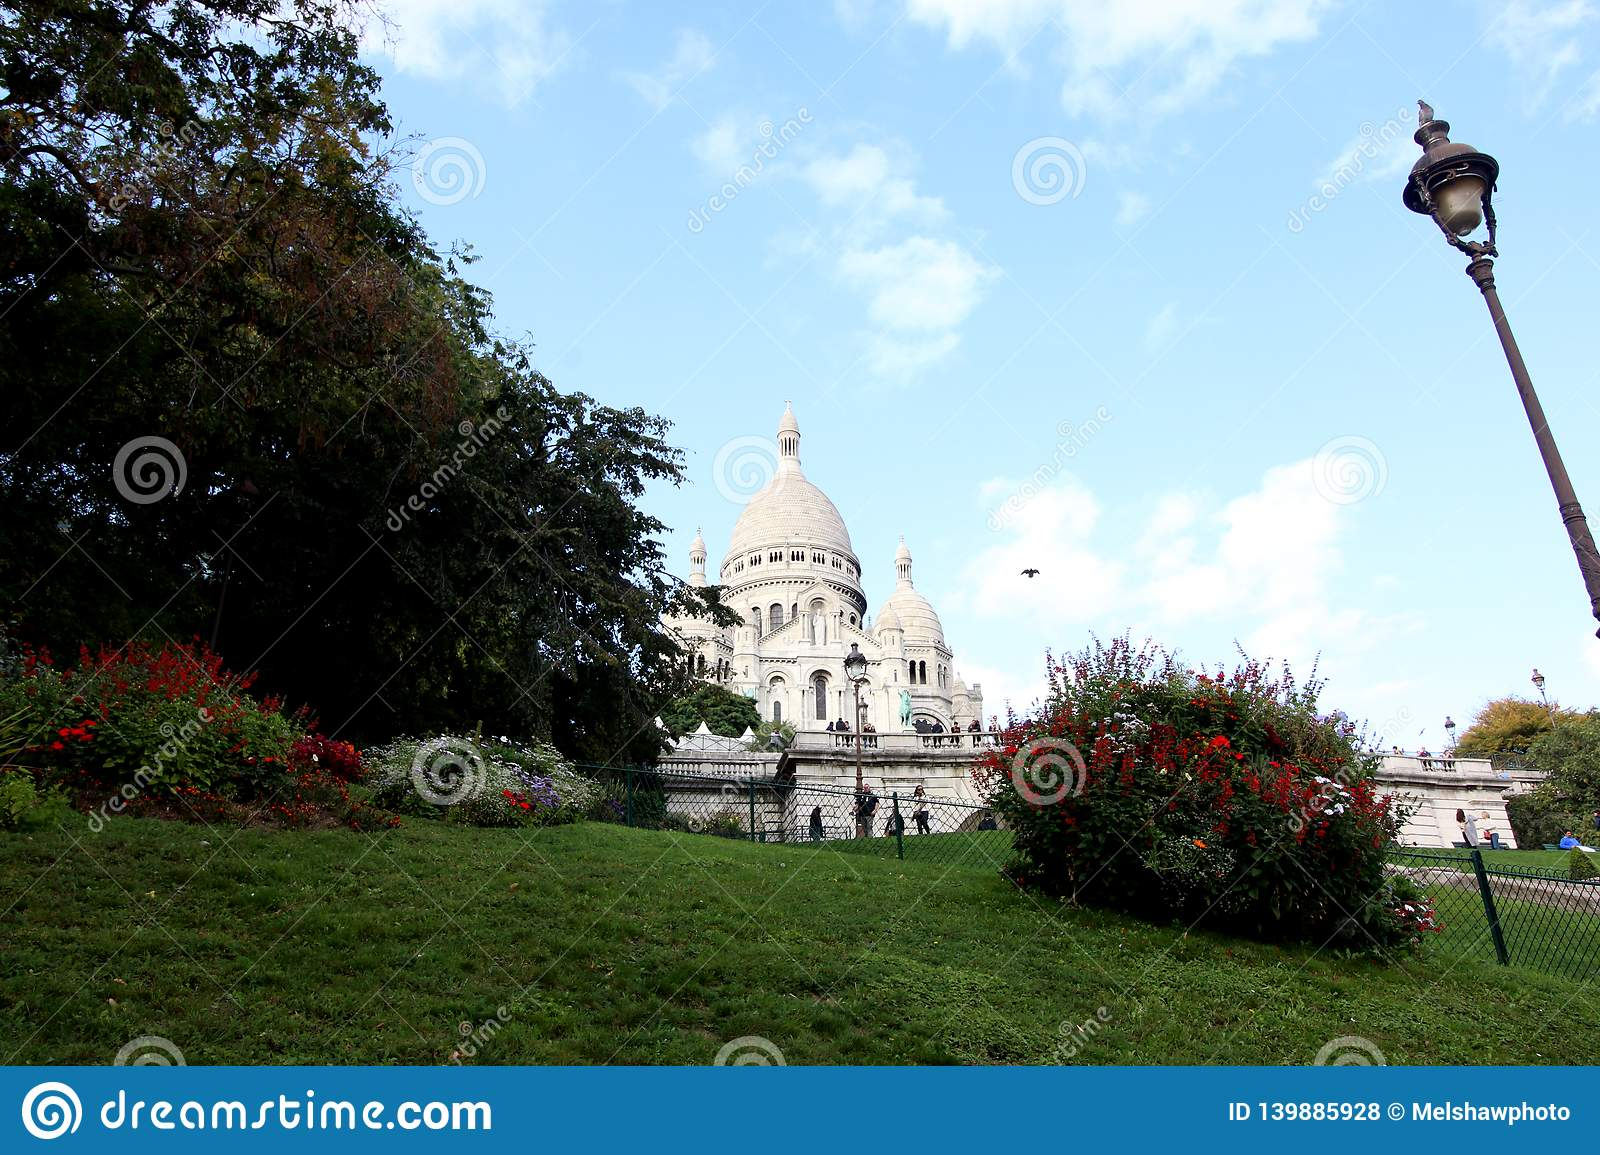 Step to Sacre Coeur Basilica, Paris, France